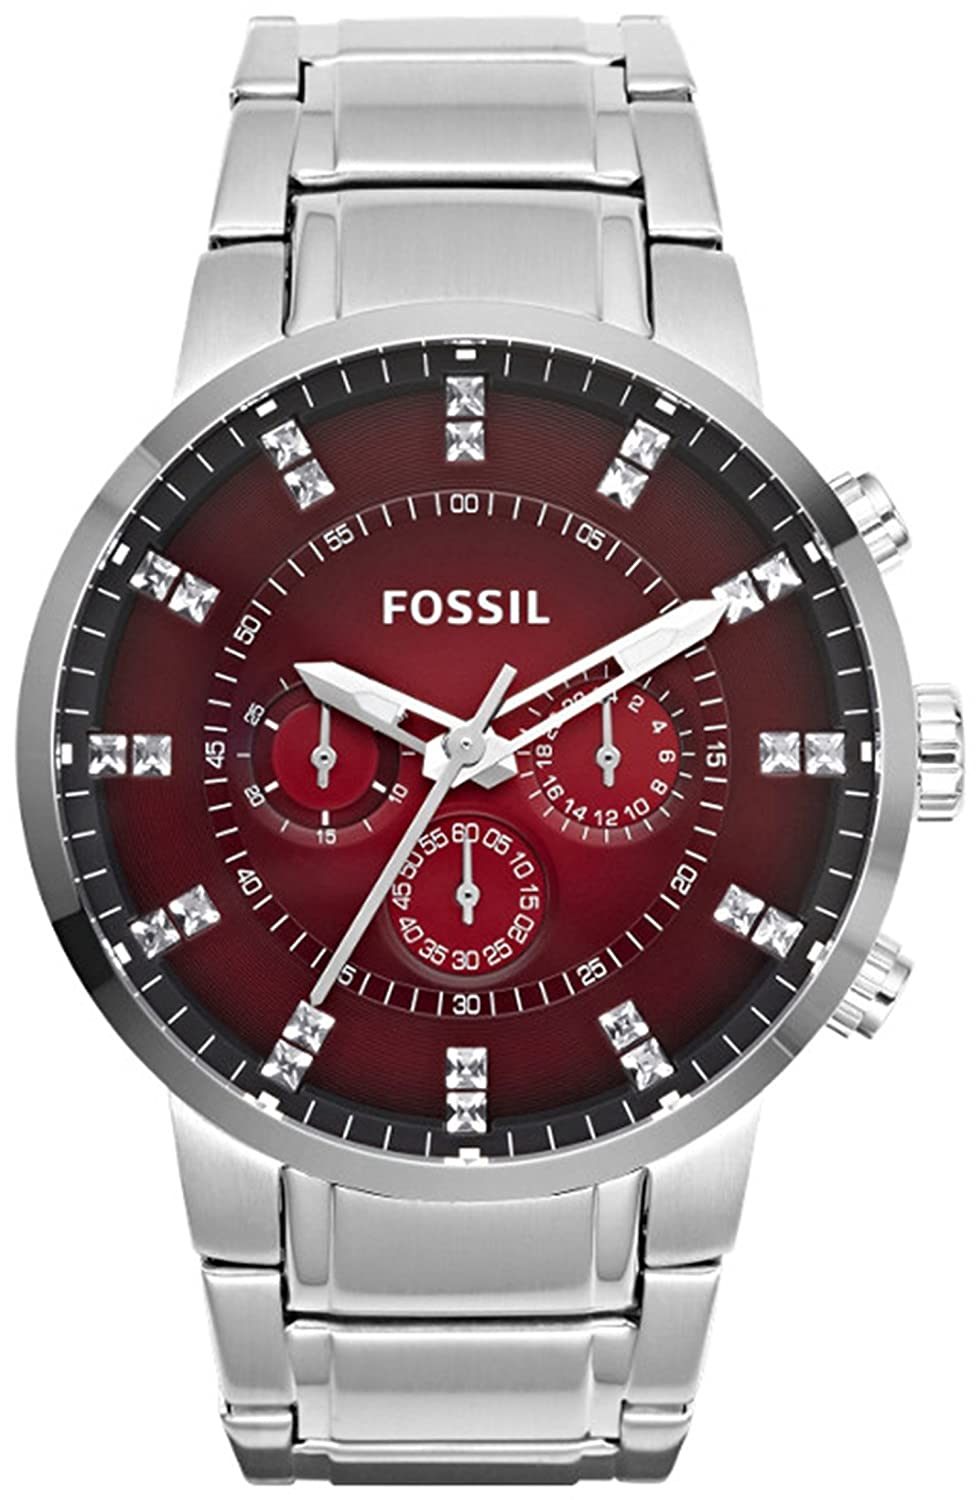 Amazon.com: Fossil Mens Machine FS4696 Silver Stainless-Steel Quartz Watch with Red Dial: Fossil: Watches